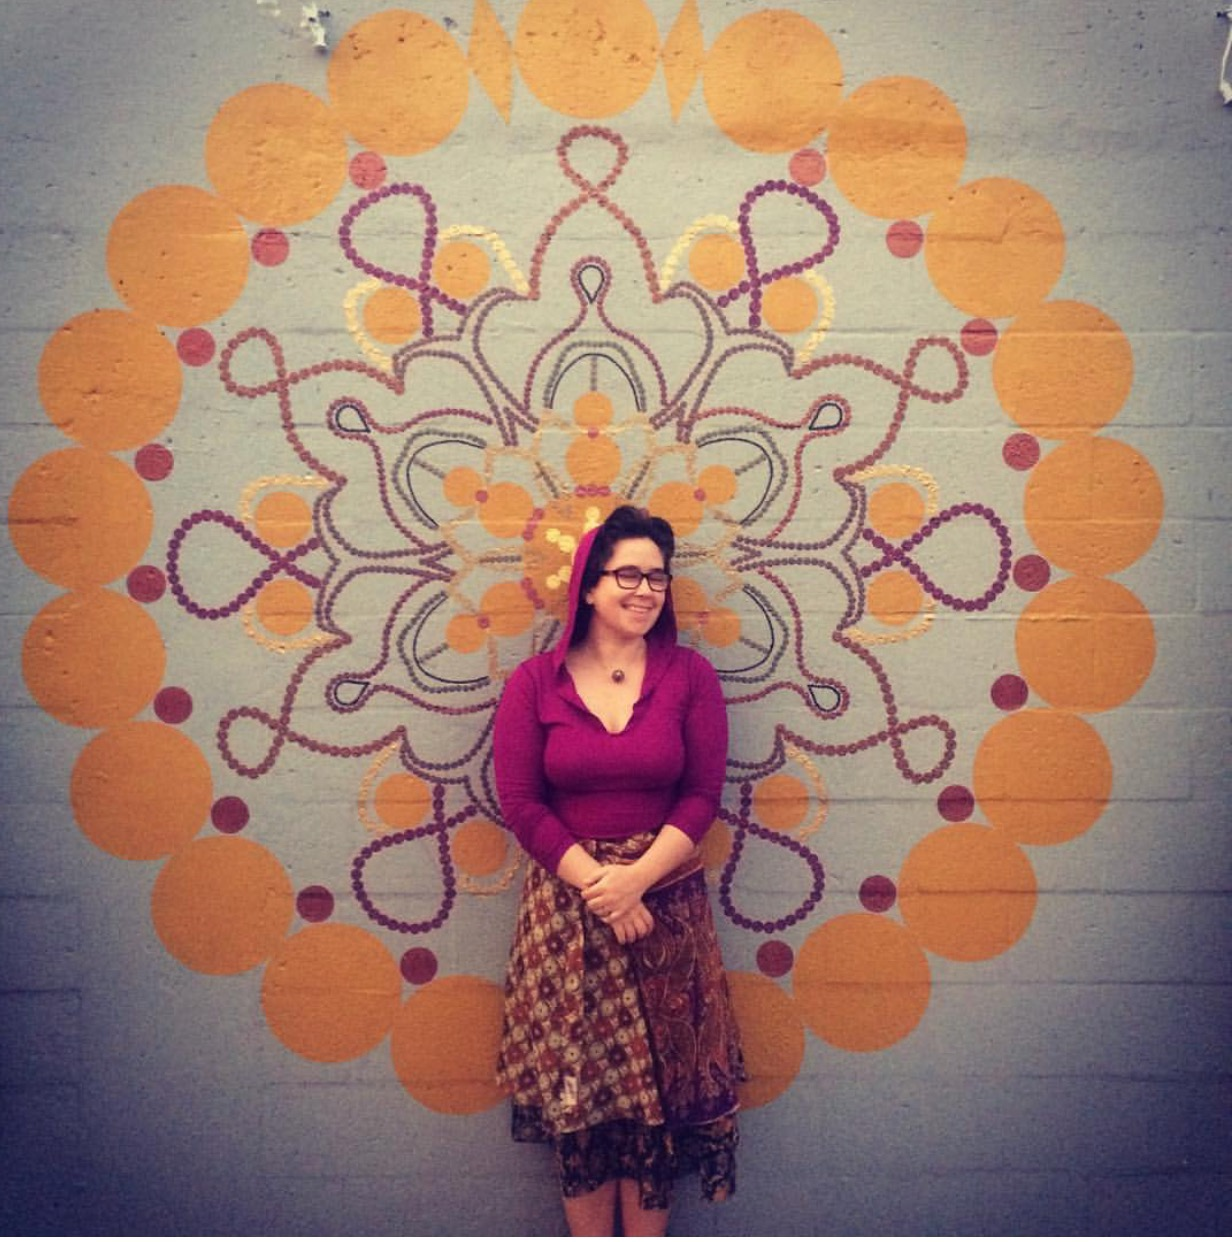 Mandala isSanskrit for circle - This mural keeps space on the wall of Bindu Yoga in West Palm Beach, greeting the students as they walk through the gates of their practice.